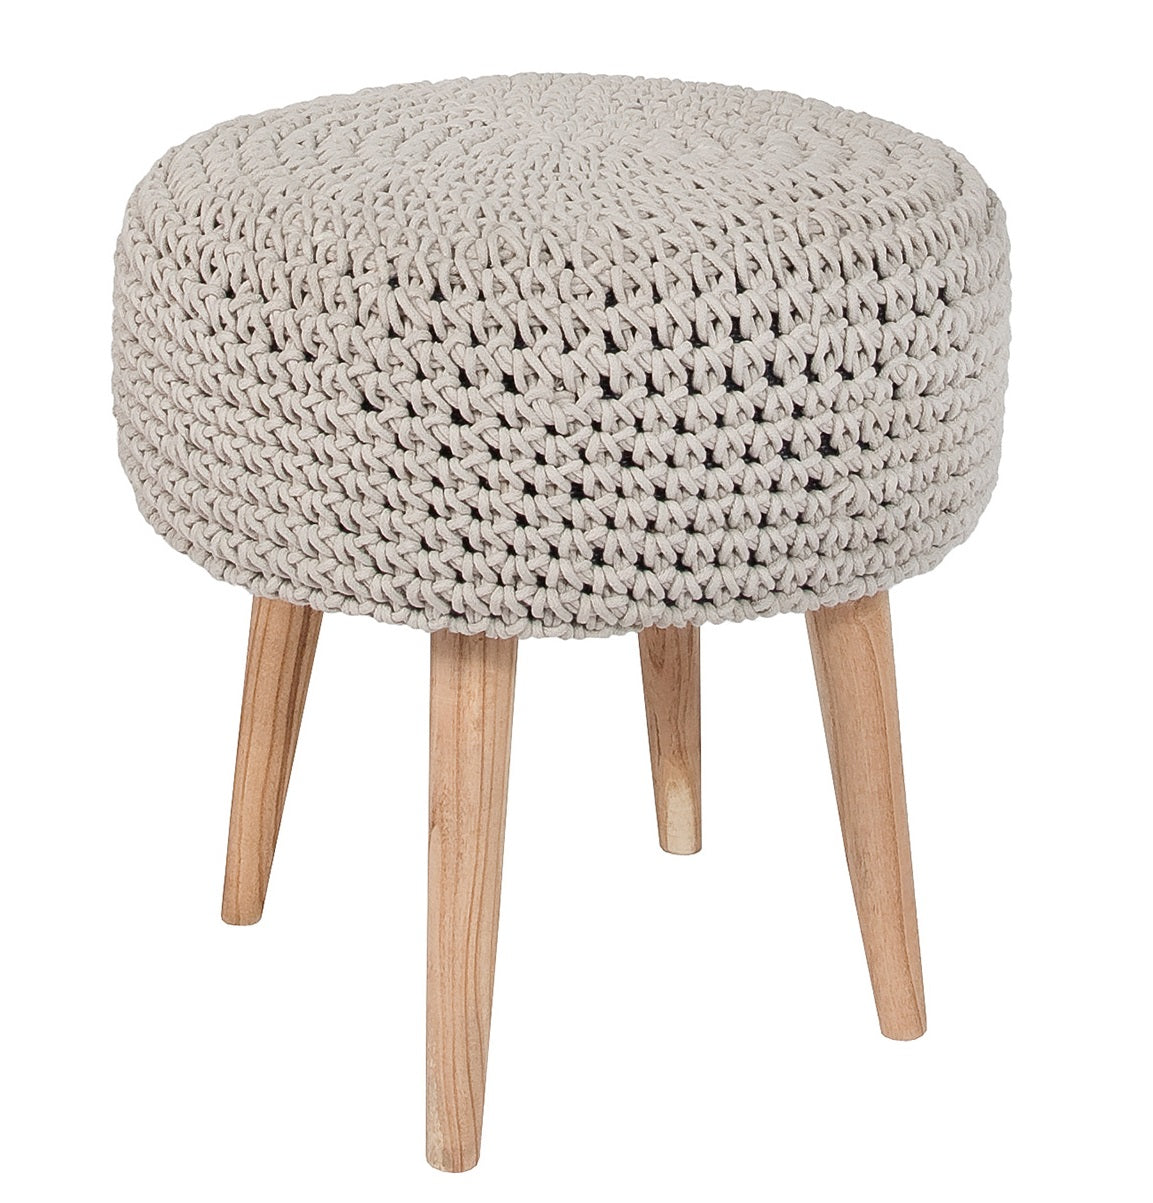 Bohemian Macrame Stool - Light Grey